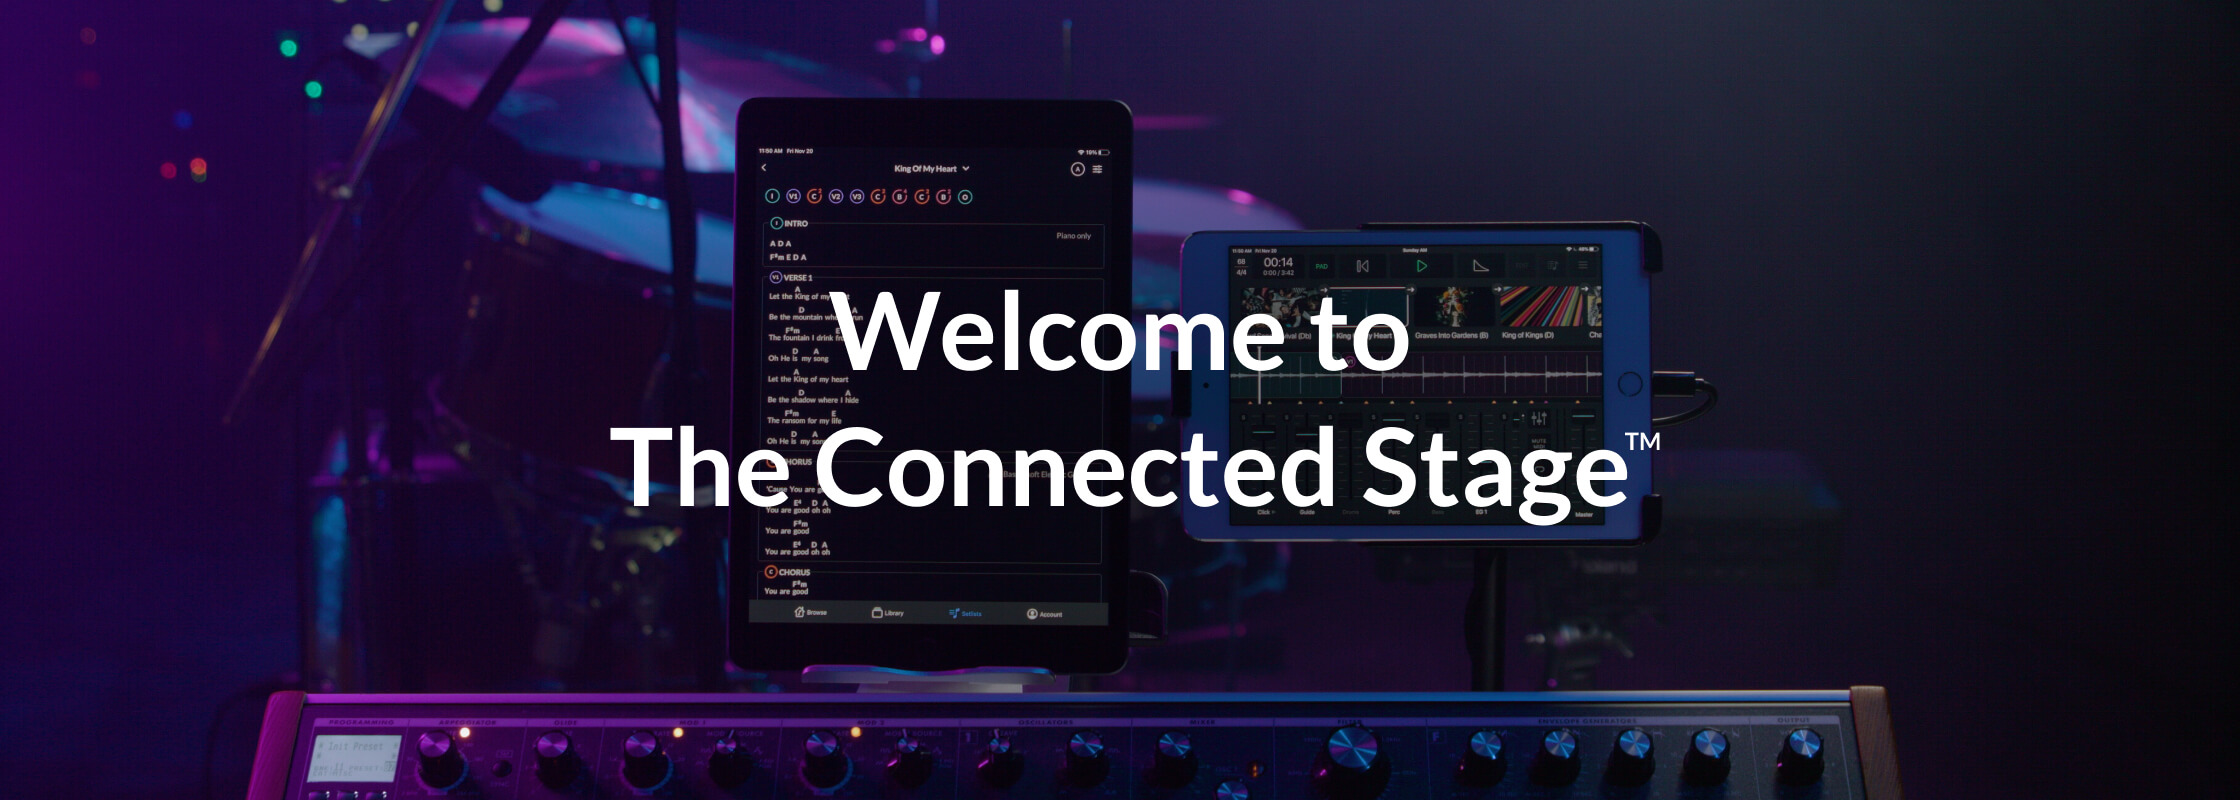 Welcome to the Connected Stage